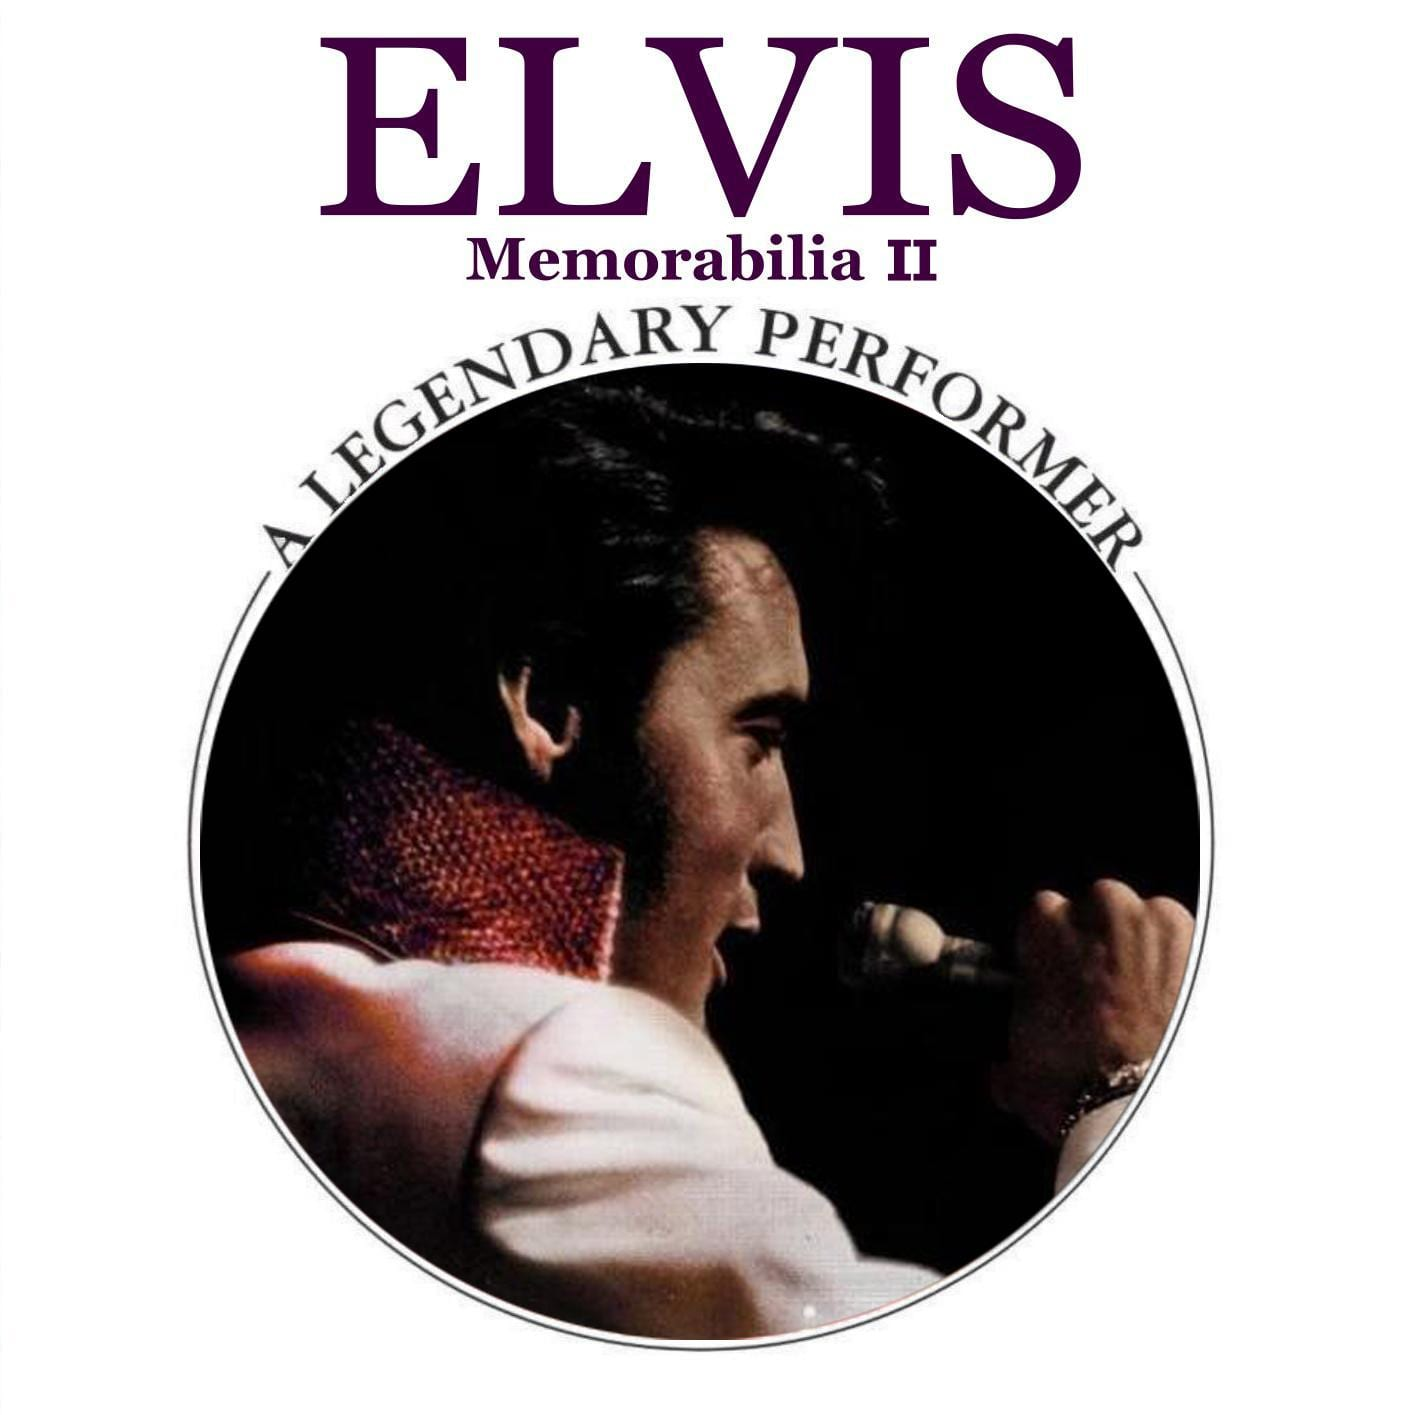 Elvis Presley - A Legendary Performer, Blue Velvet (2011) CD 8